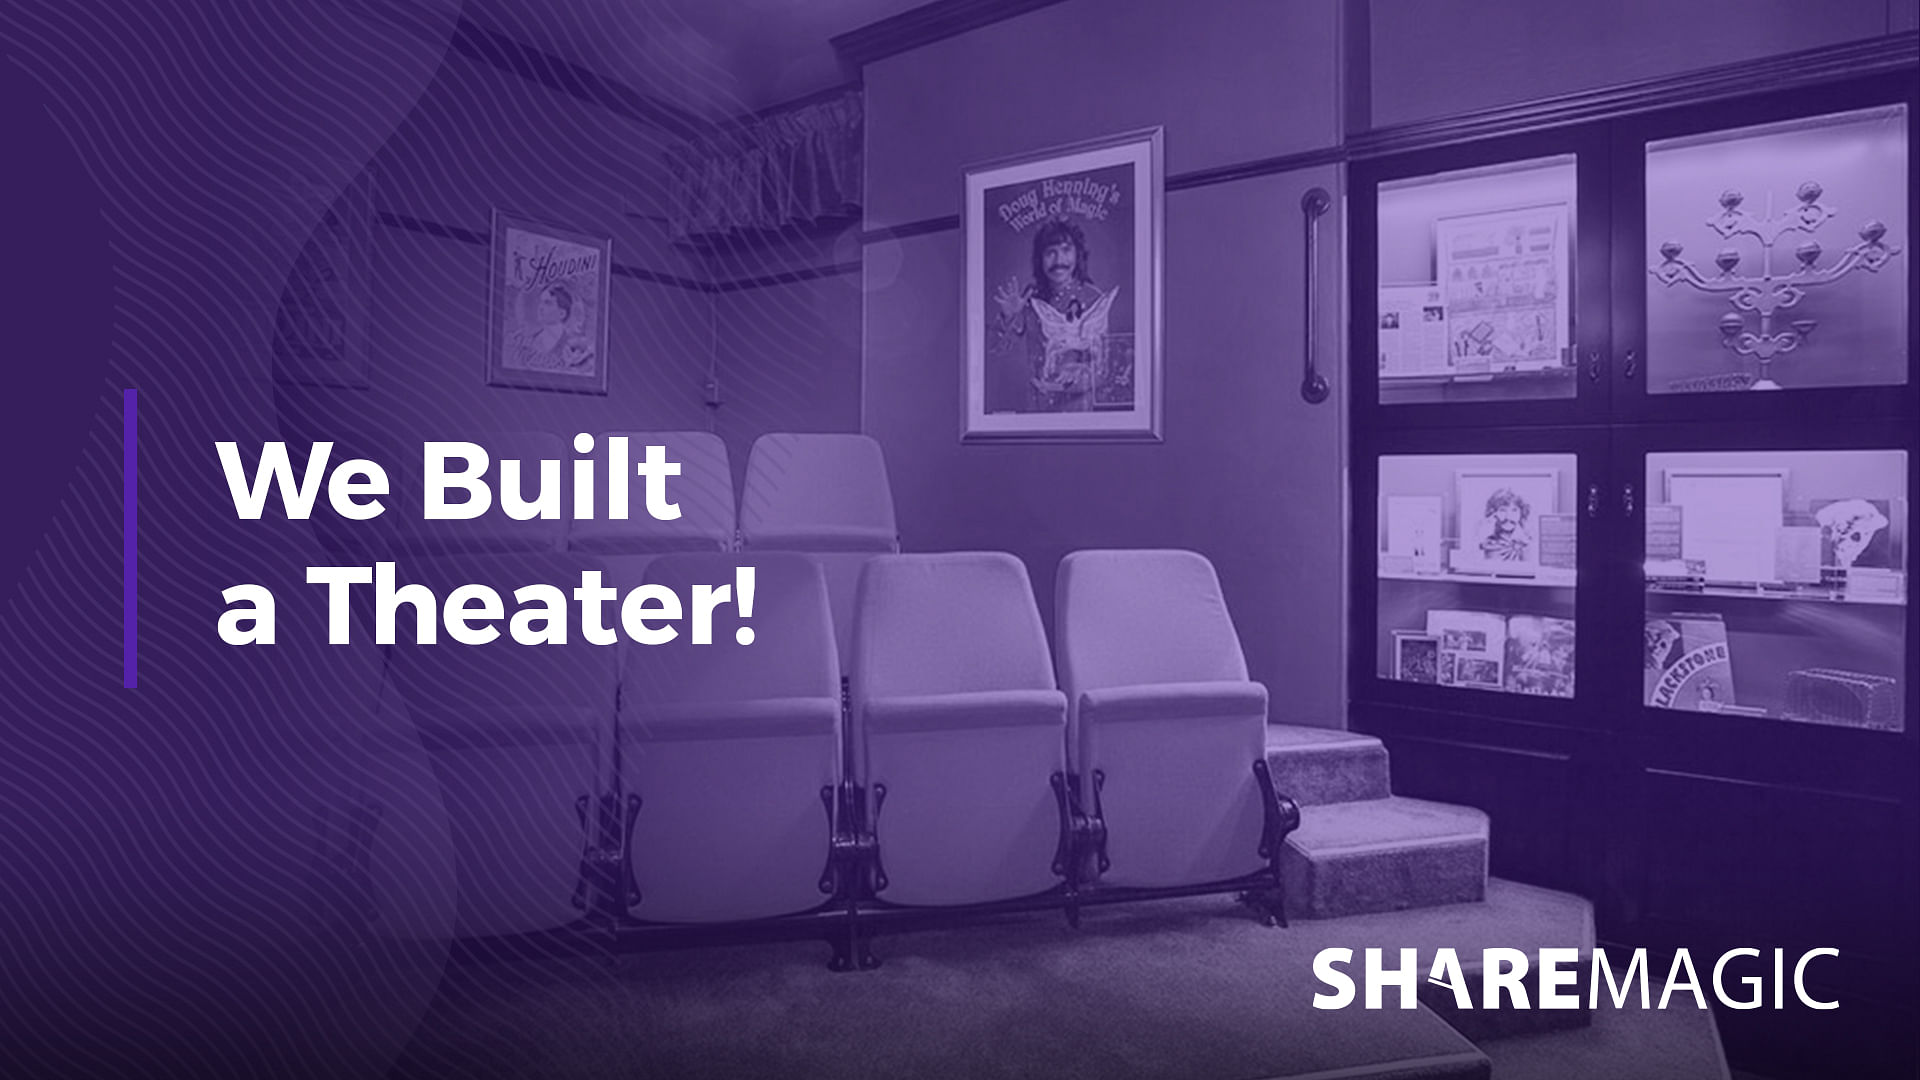 We Built a Theater!